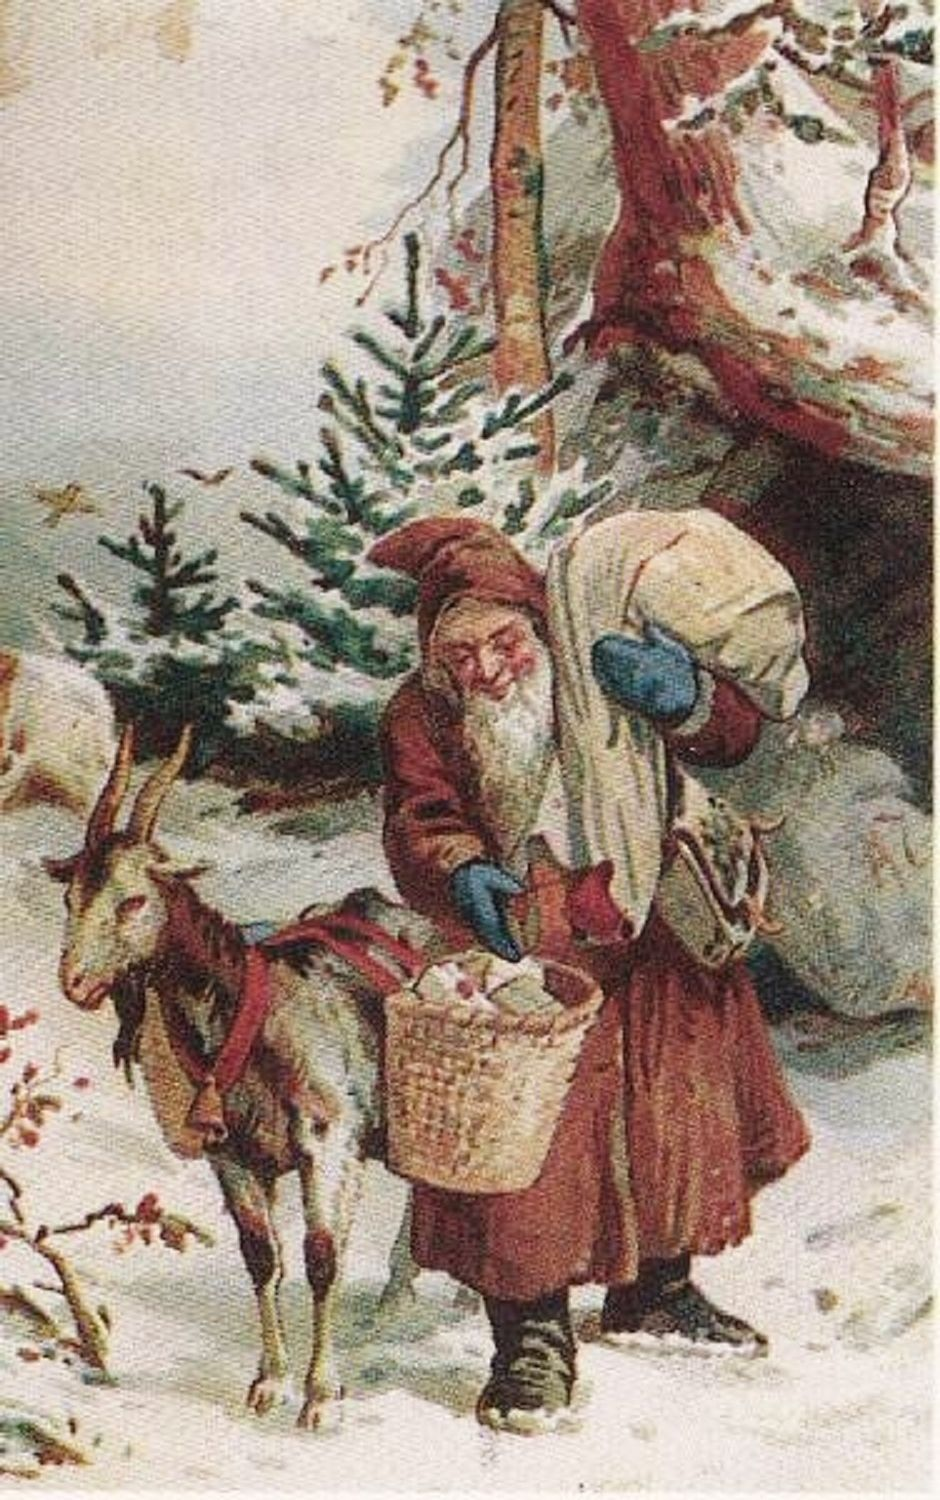 08_Y father christmas with Yule Goat